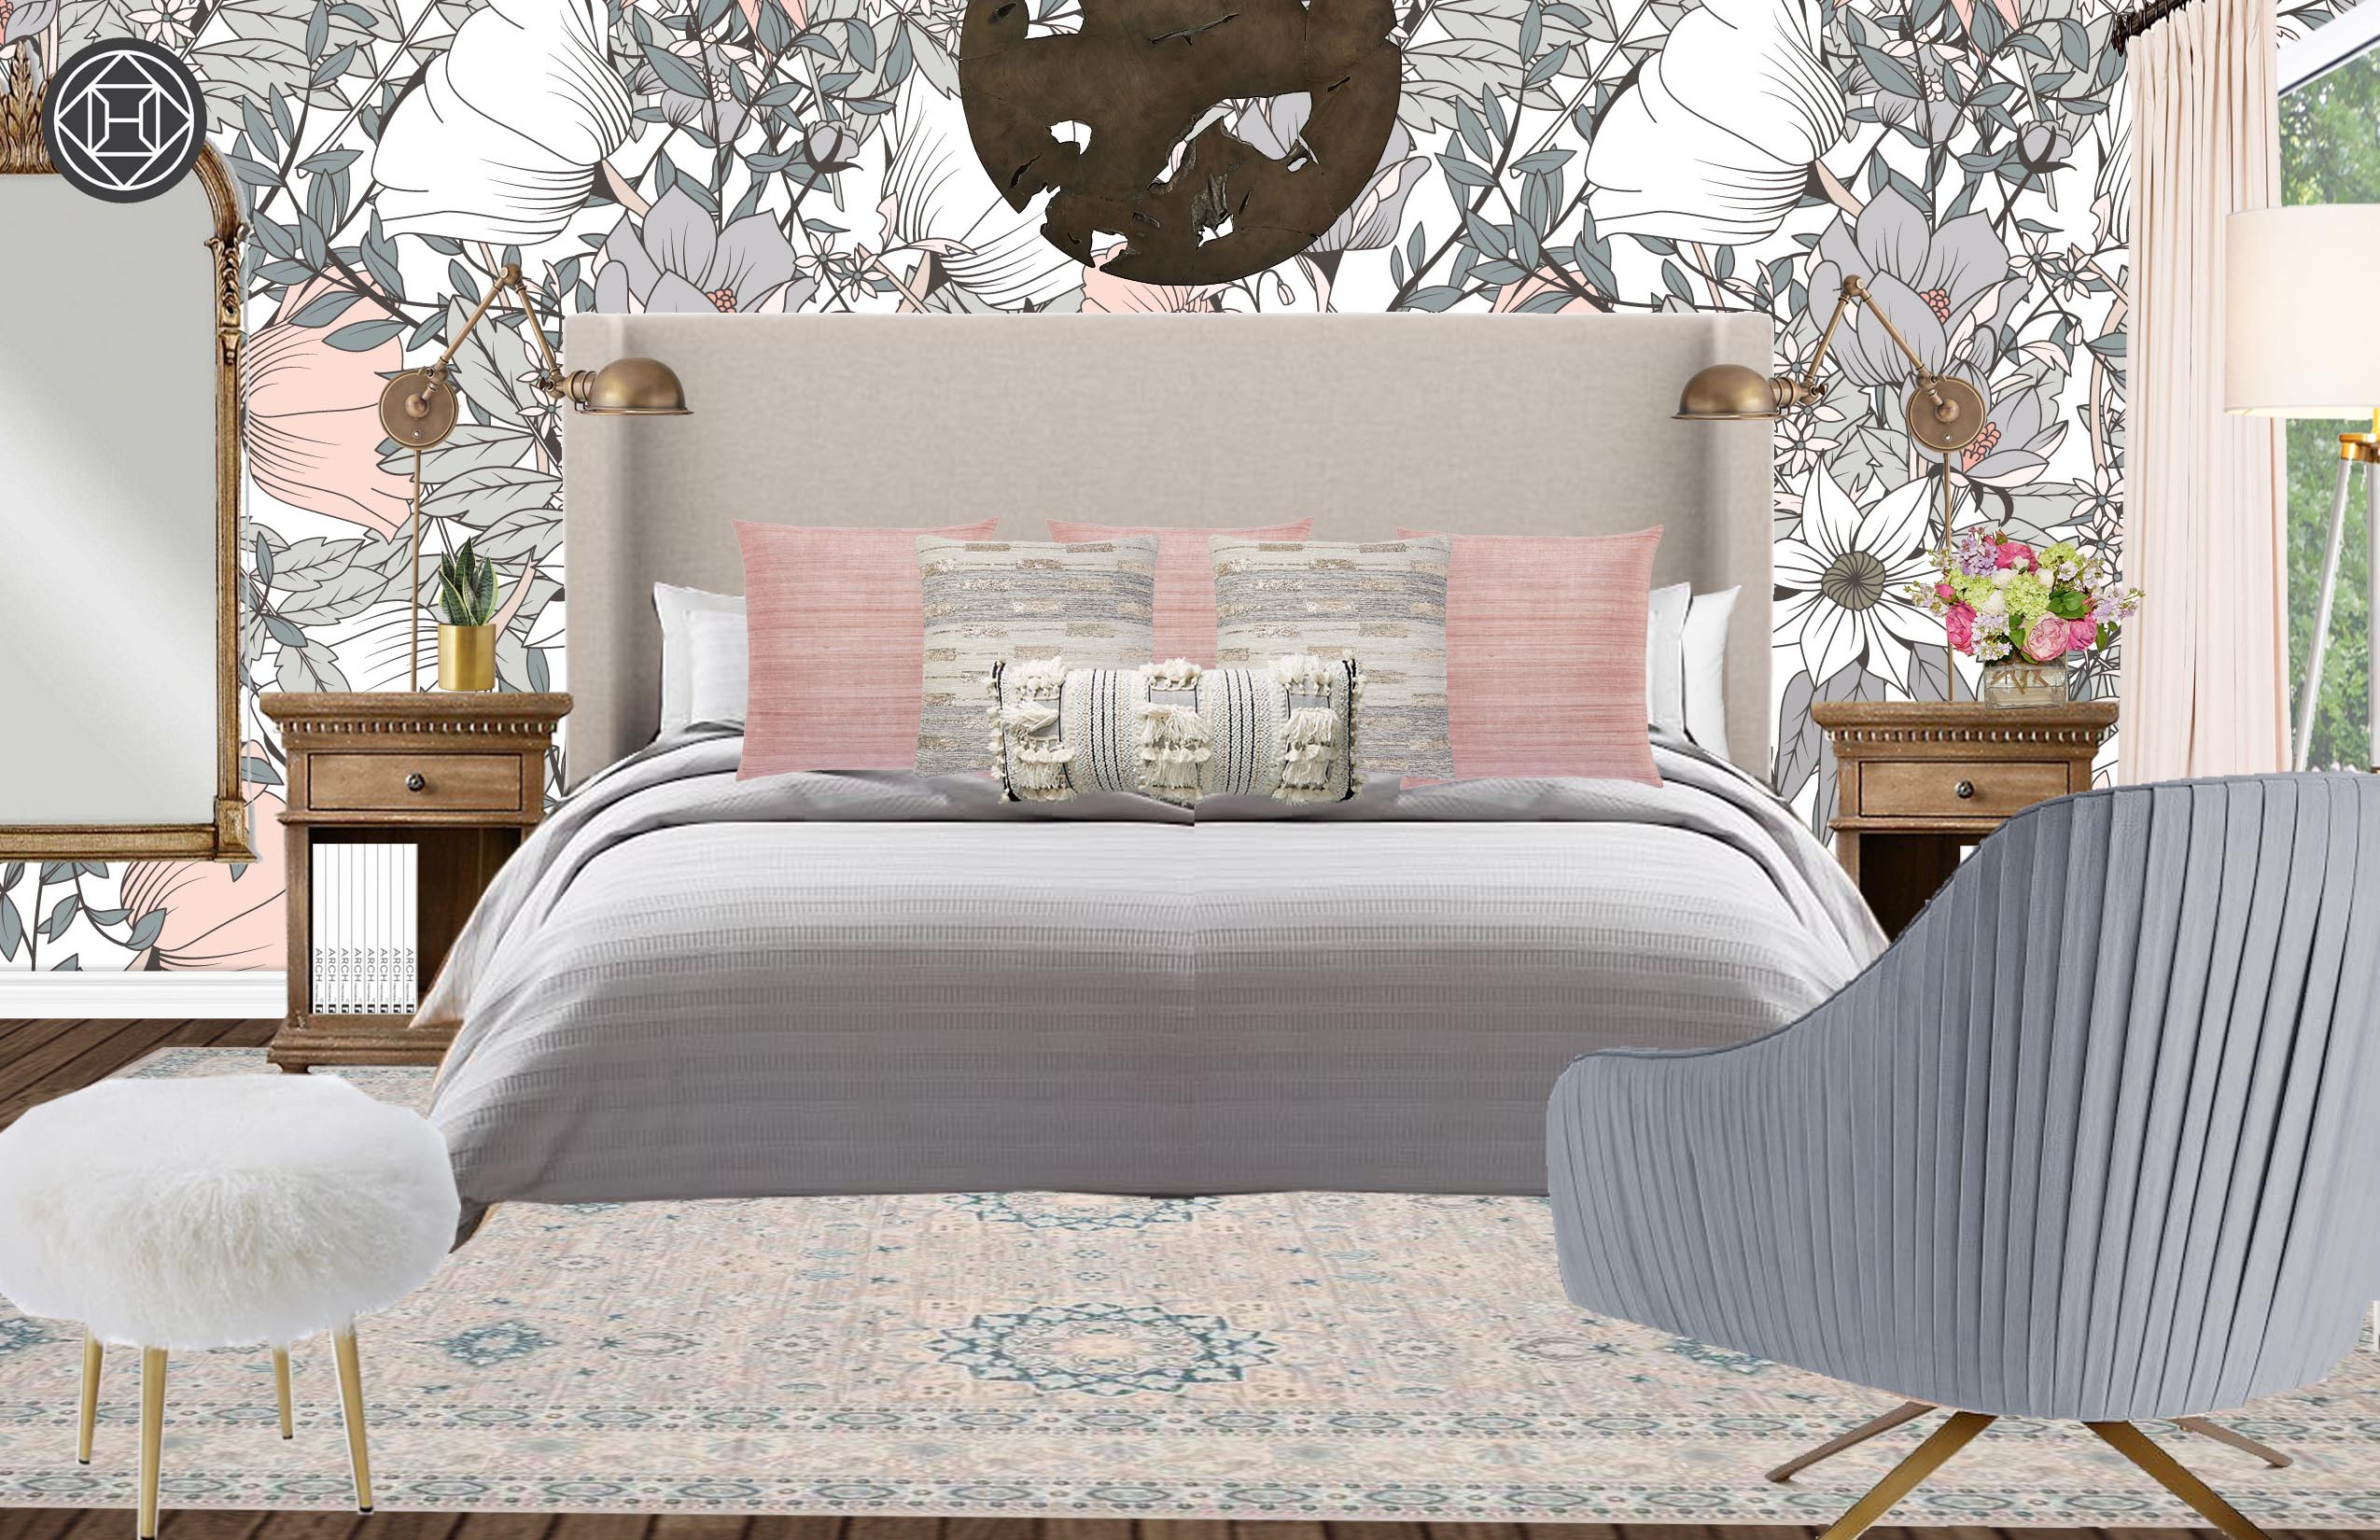 . Eclectic  Bohemian  Glam  Midcentury Modern Bedroom Design by